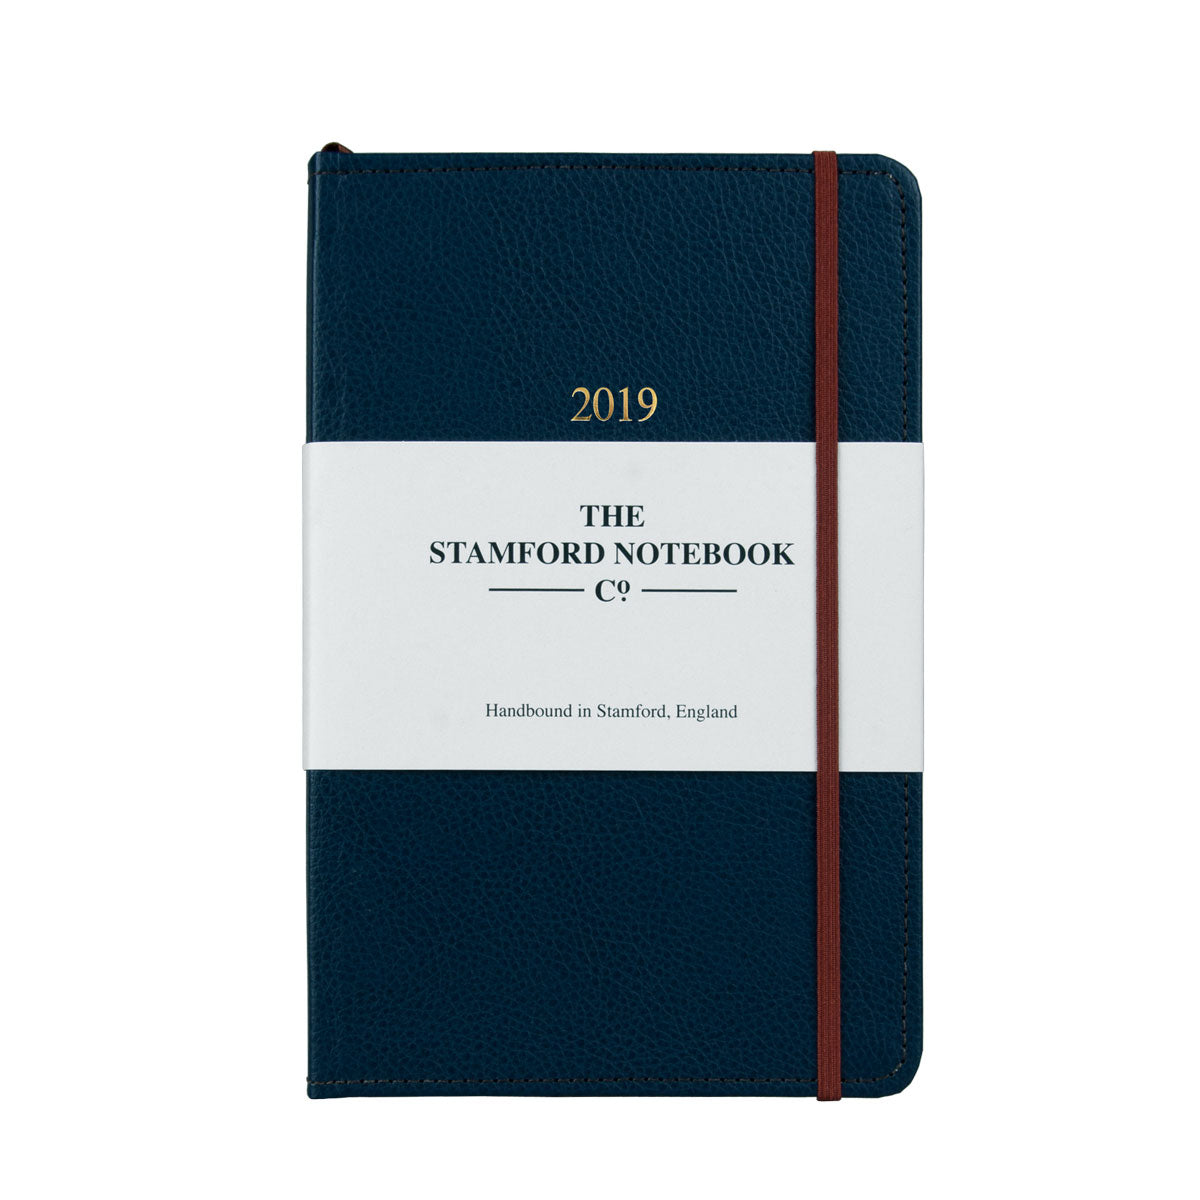 Marine Blue leather diary with brown stitching